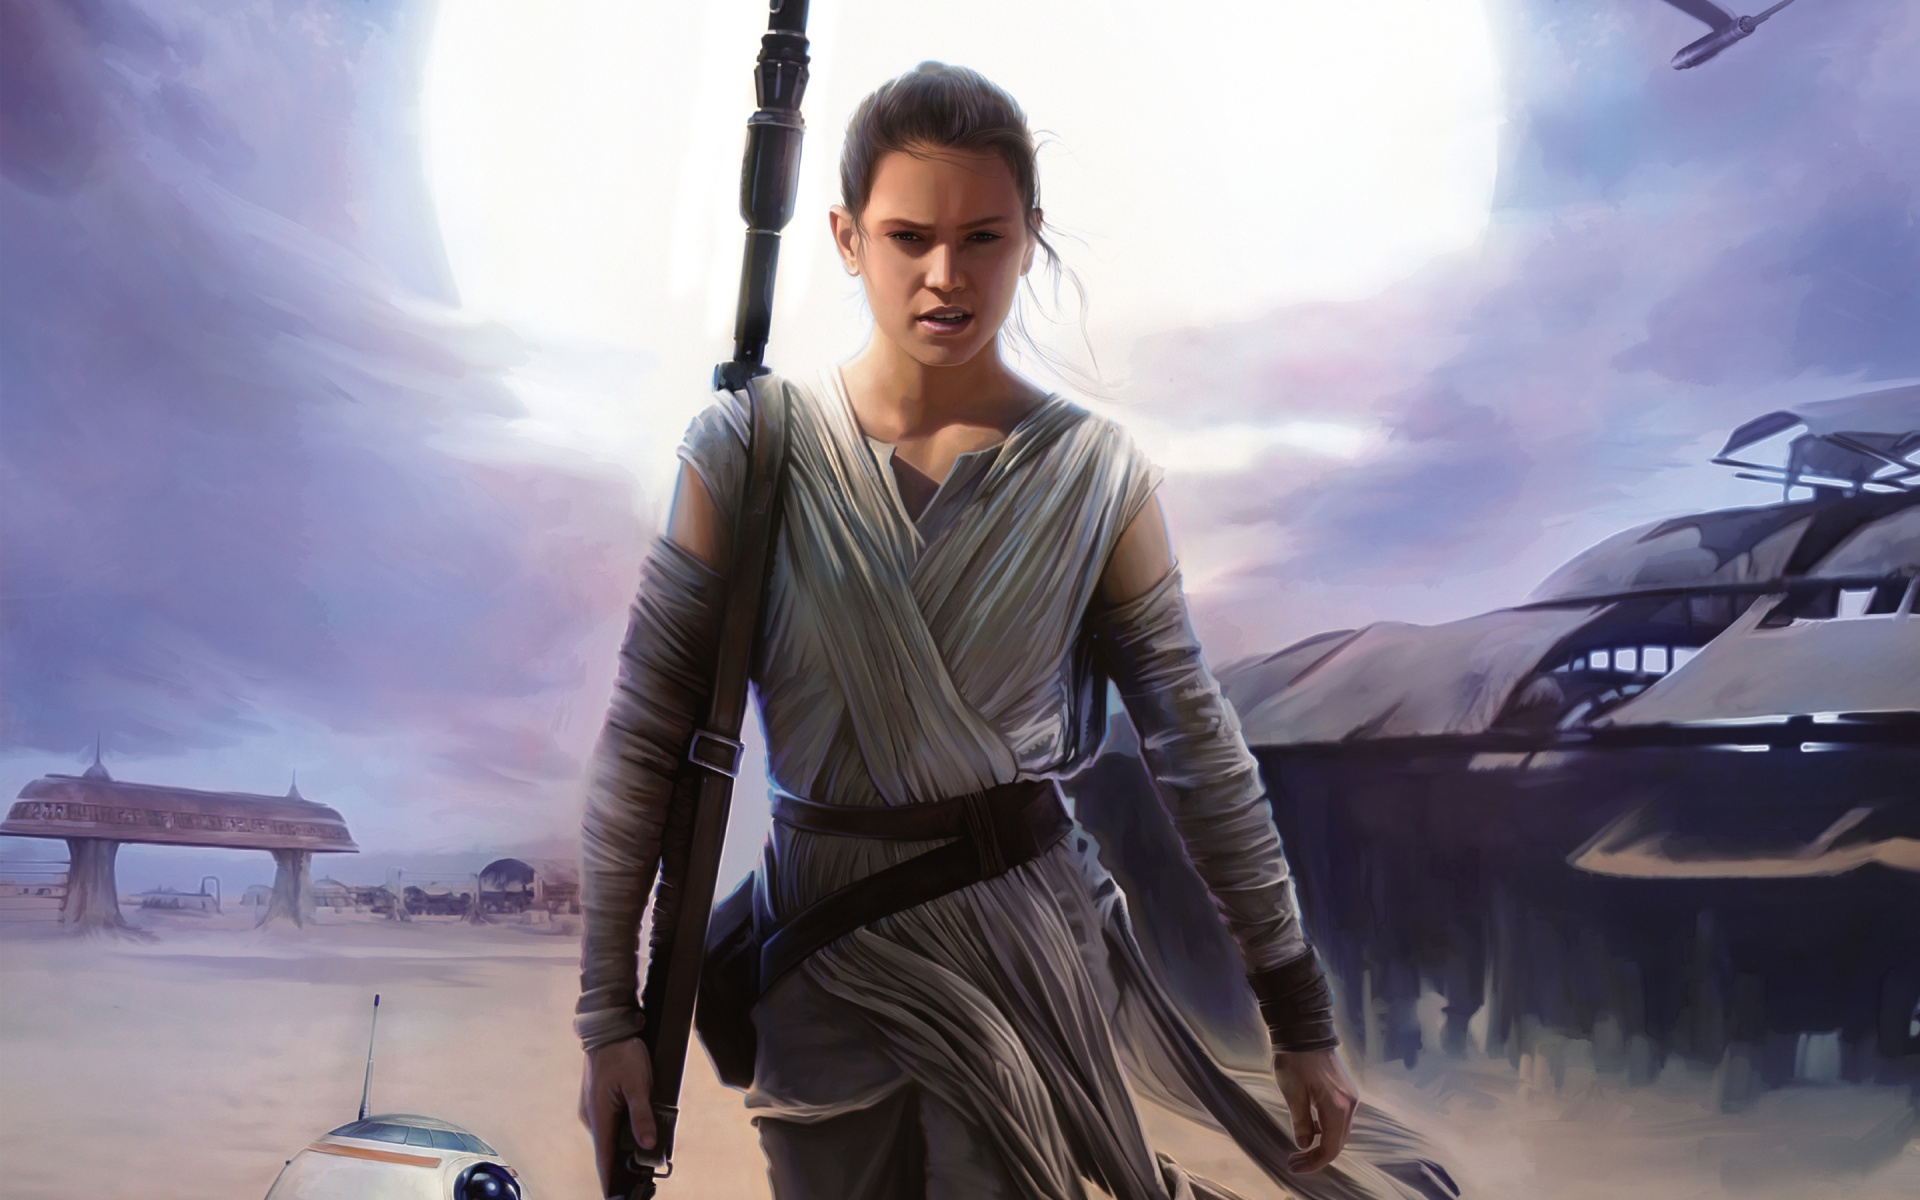 rey star wars the force awakens wallpapers in jpg format for free